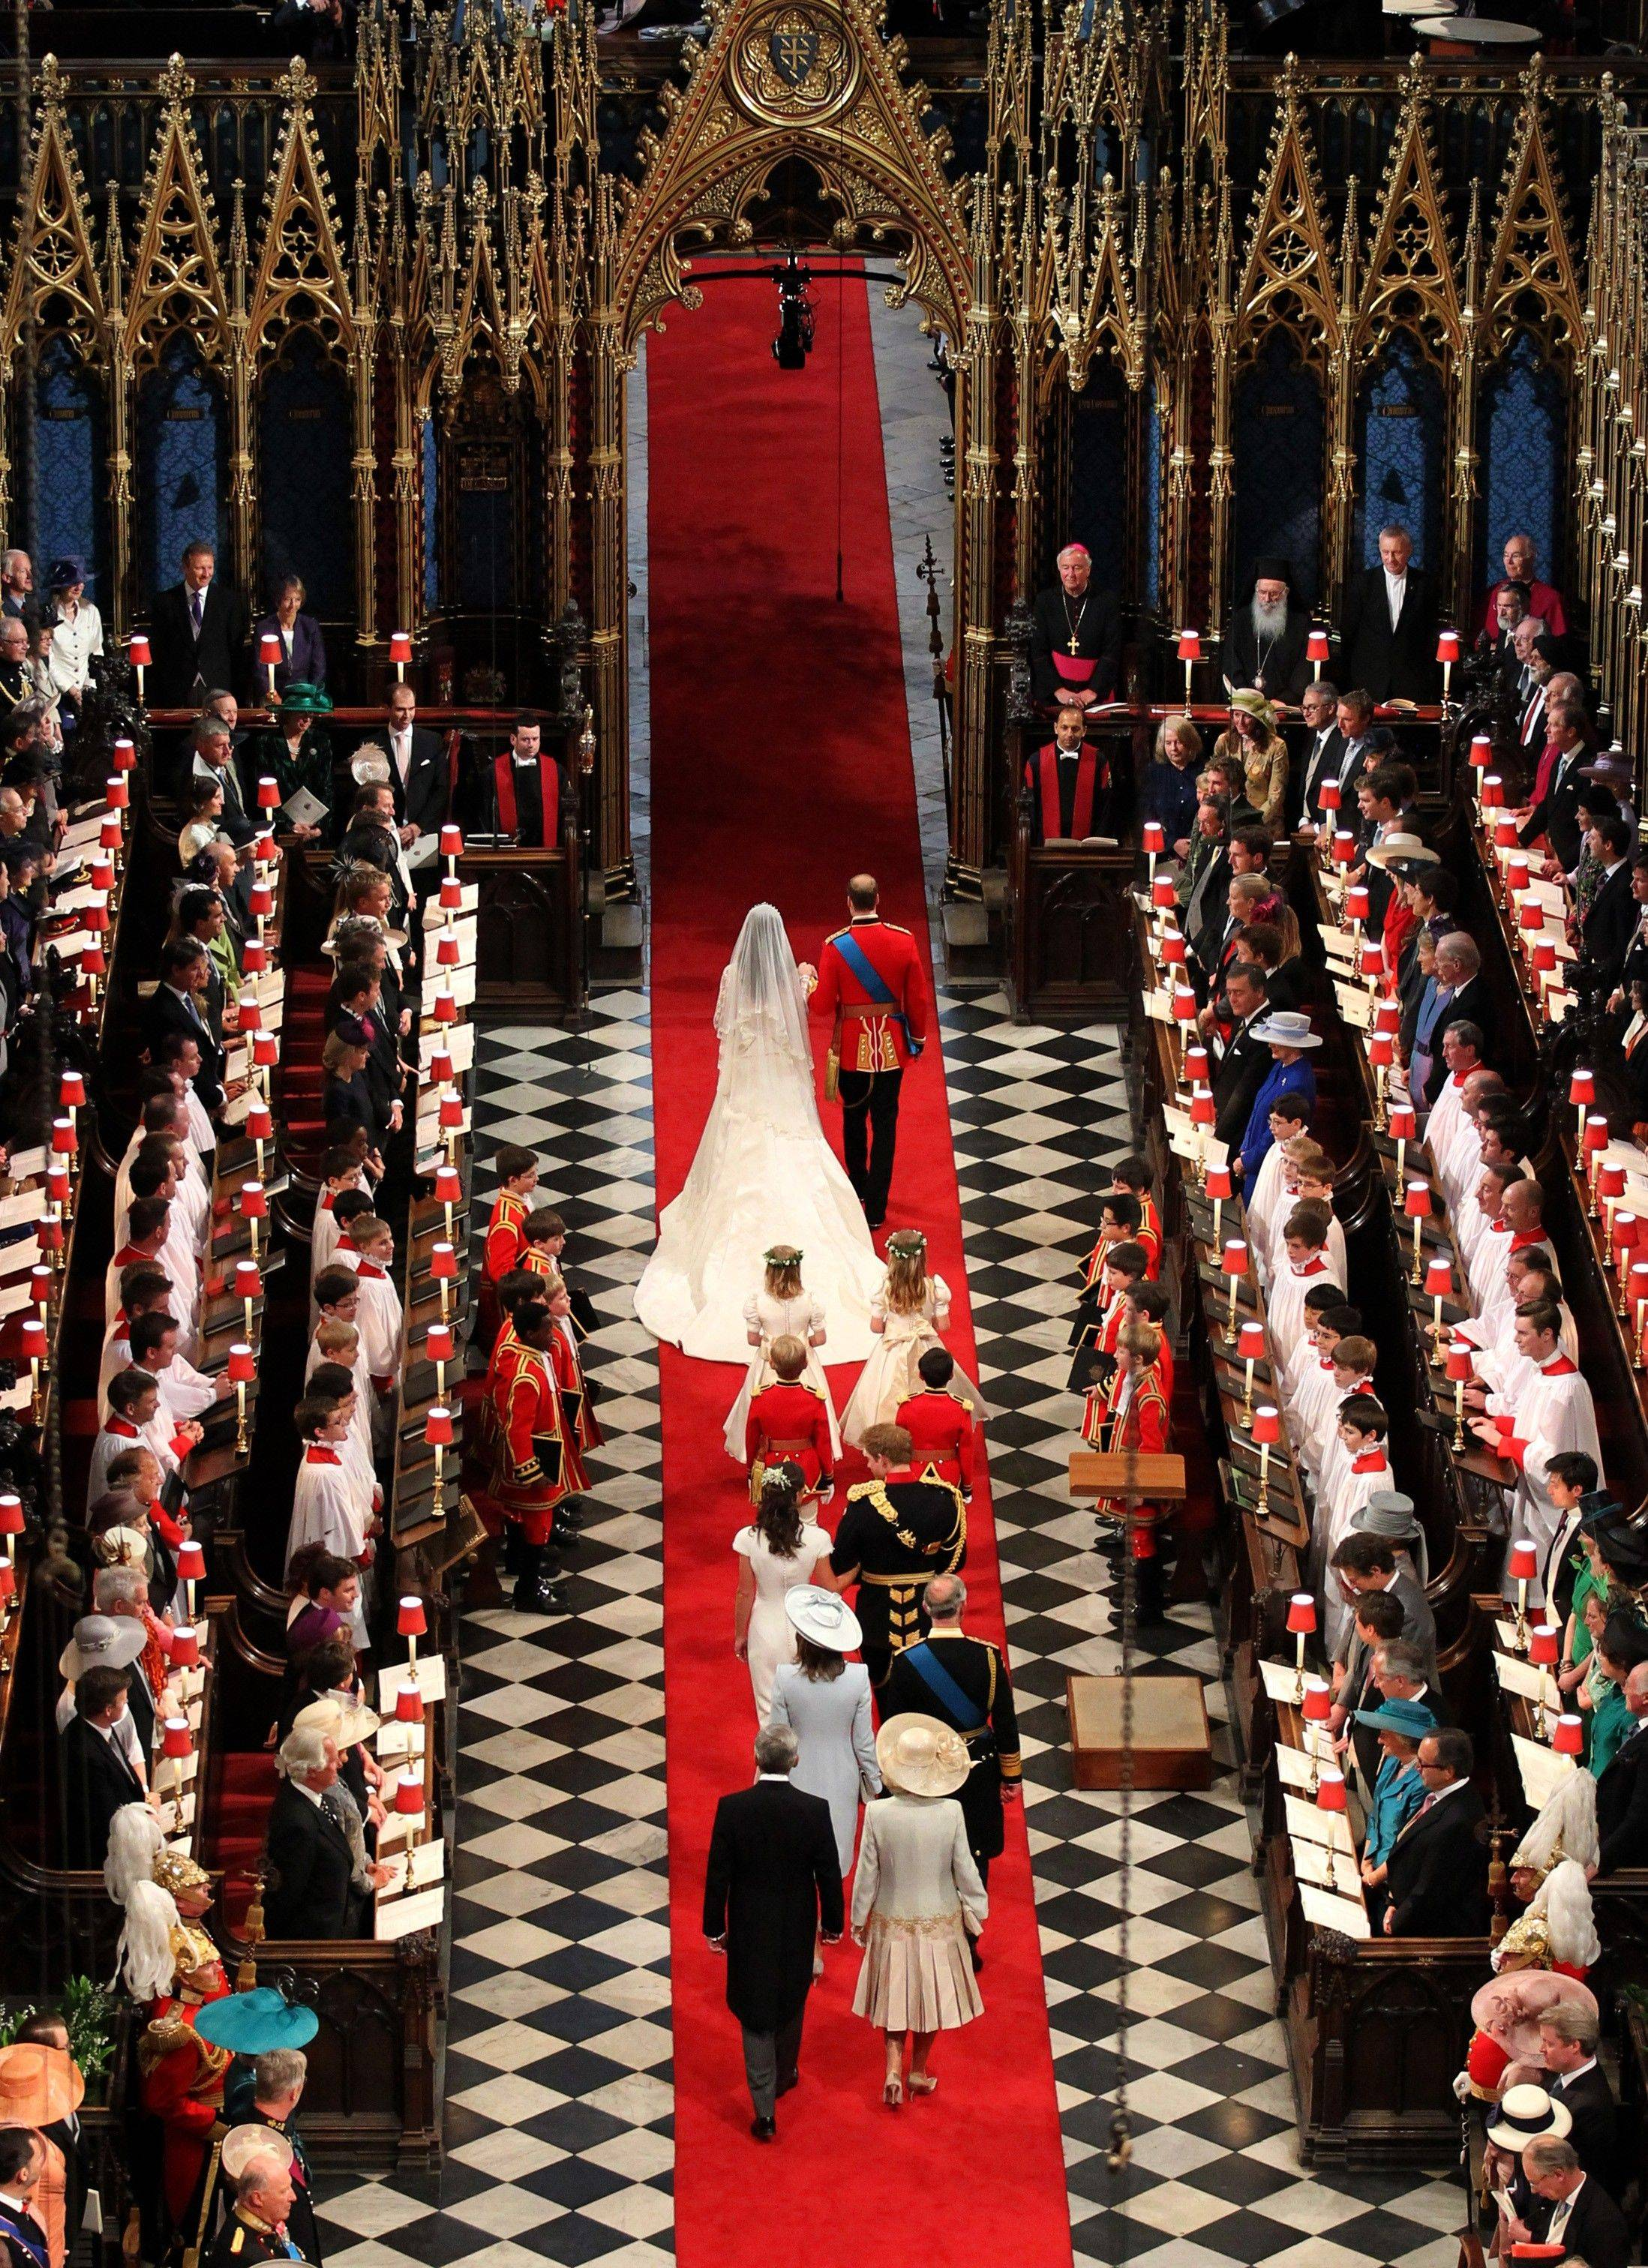 Prince William and his new bride Kate, Duchess of Cambridge, leave Westminster Abbey, central London, after their marriage Friday April 29, 2011.